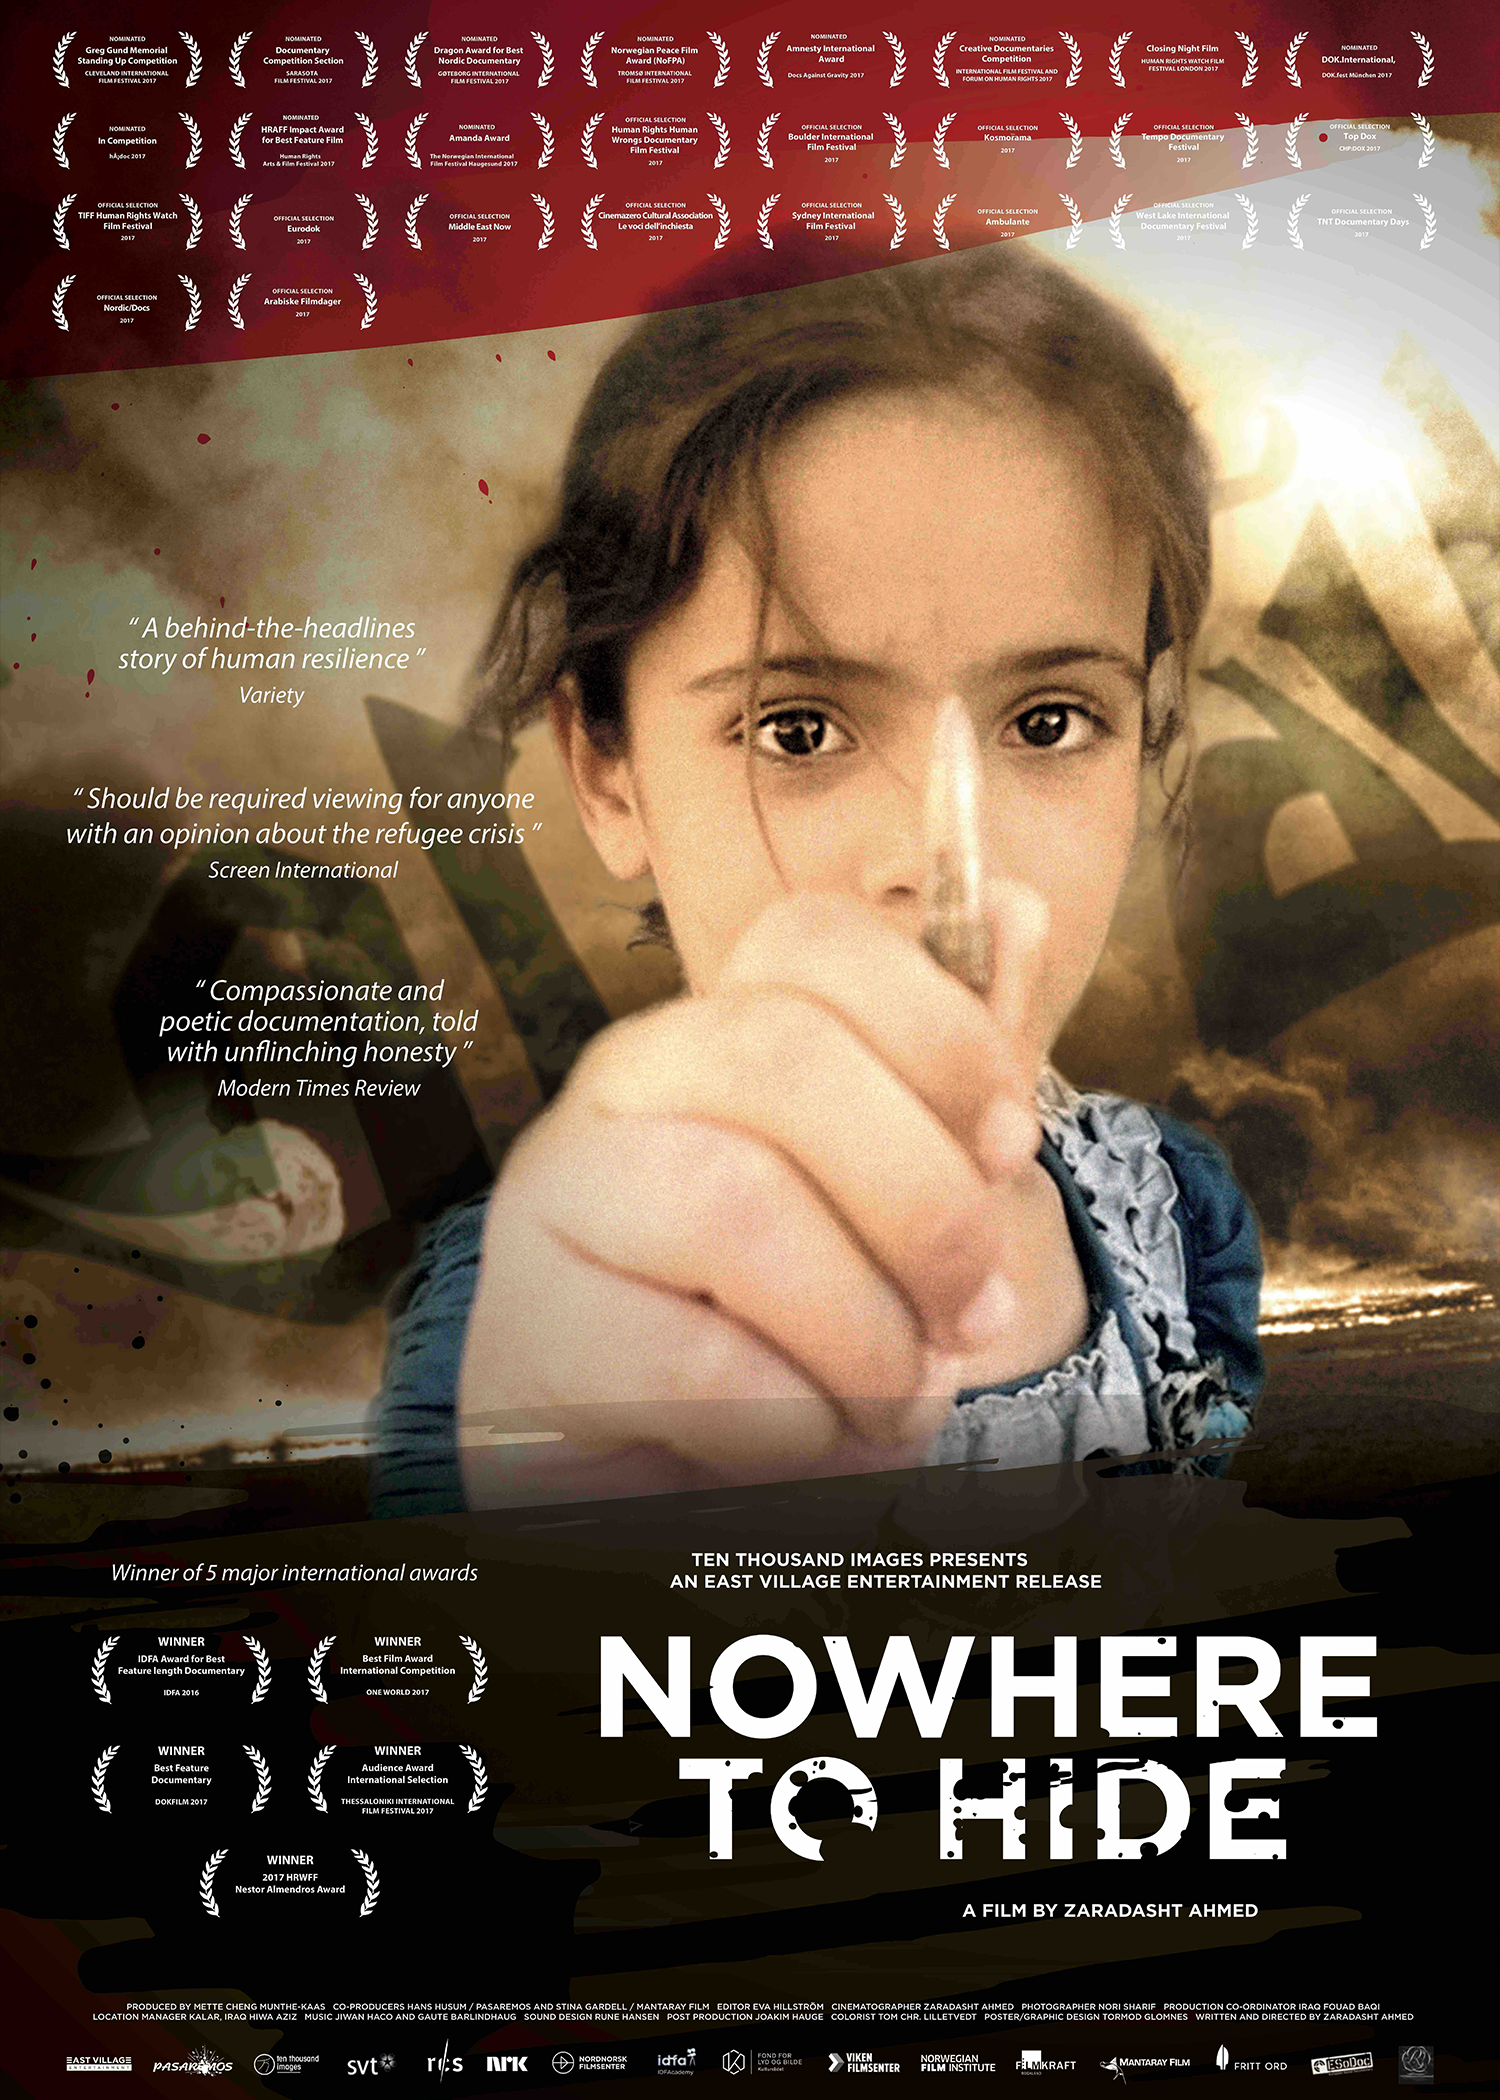 """Nowhere to Hide - 2016, Norway/Sweden, 86 min, in Arabic with subtitlesAfter the Americans left Iraq in 2011, a male nurse named Nori Sharif was asked to report on the state of his country, providing unique access into one of the world's most dangerous and inaccessible areas – the """"triangle of death"""" in central Iraq. Working in the local hospital in Jalawla, he filmed the victims of war over the course of five years. The shocking images show families torn apart, maimed and damaged by the violence in Iraq. And every day more arrive, as the conflicts continue and life is disrupted by attacks over and over again. Often it isn't even clear who the adversaries are. But the threat level increases, and when the Iraqi army pulls out in 2013 because of militant groups, the population flees – accompanied by the majority of the hospital staff. Sharif is one of the few who remain. When IS advances on Jalawla in 2014 and finally takes over the city, Sharif continues to film. Then he too has to flee at a moment's notice, to bring himself and his family to safety."""